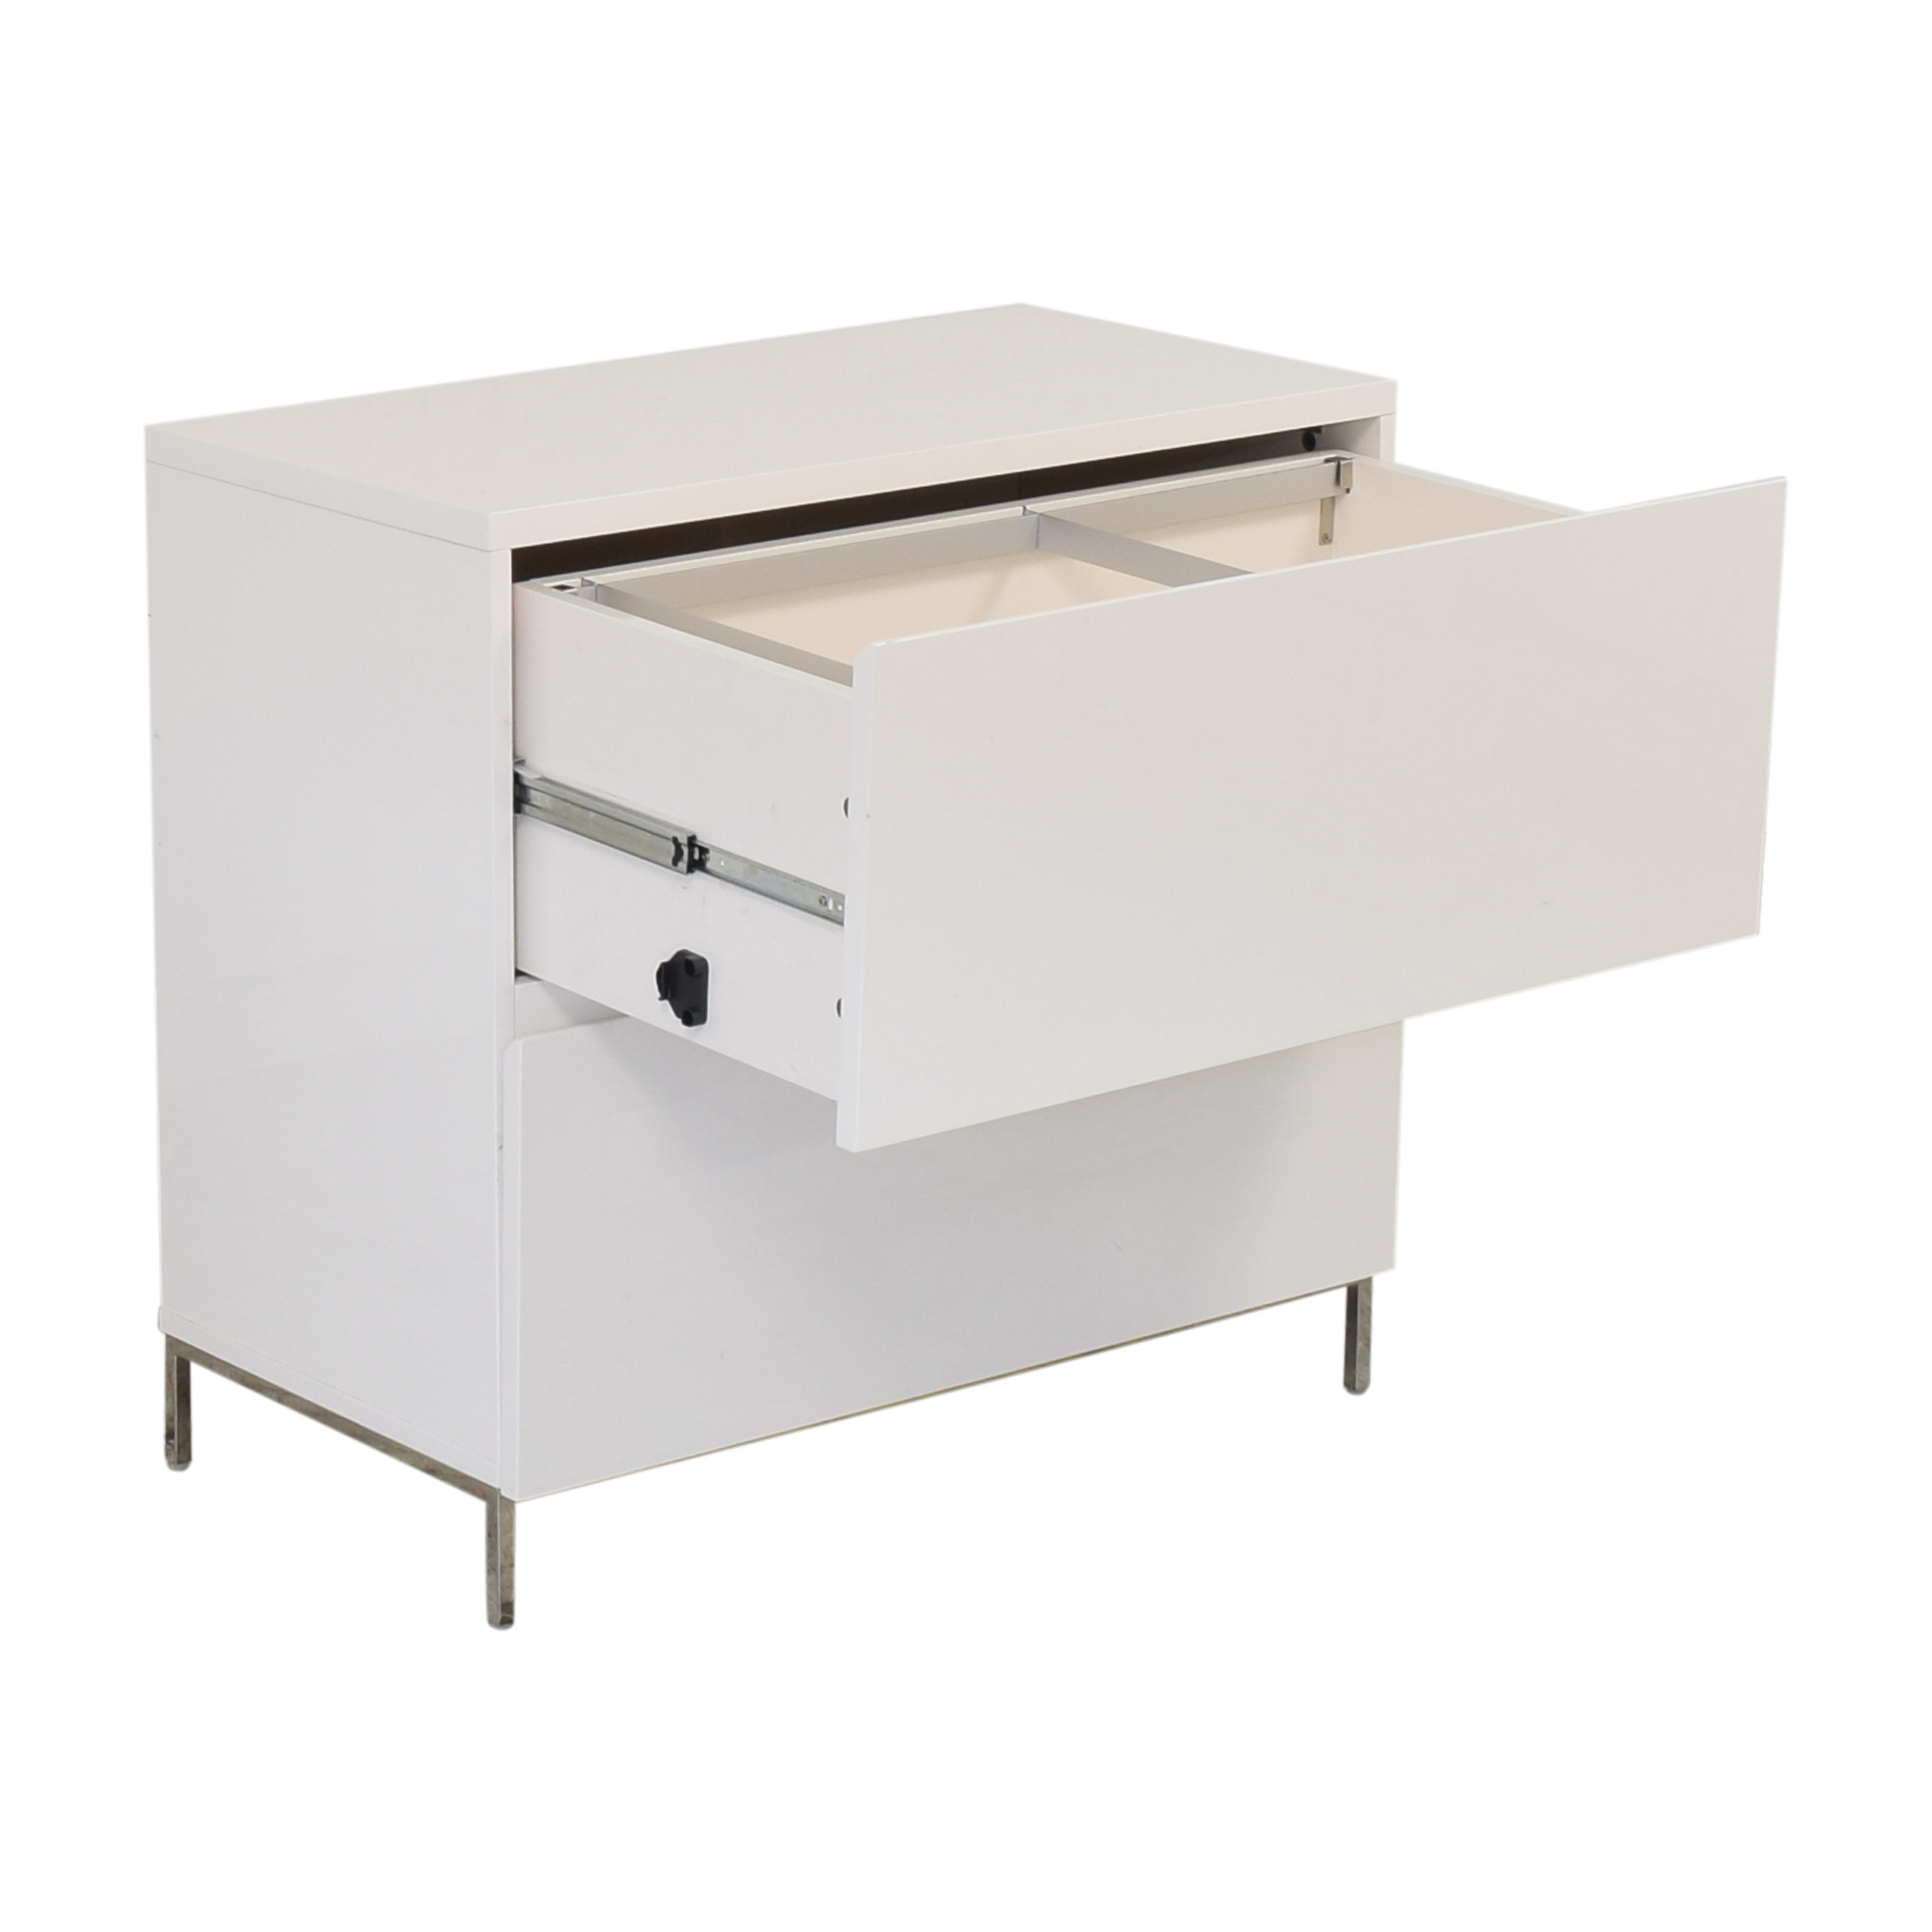 West Elm West Elm Lacquer Storage Modular Lateral File Cabinet white